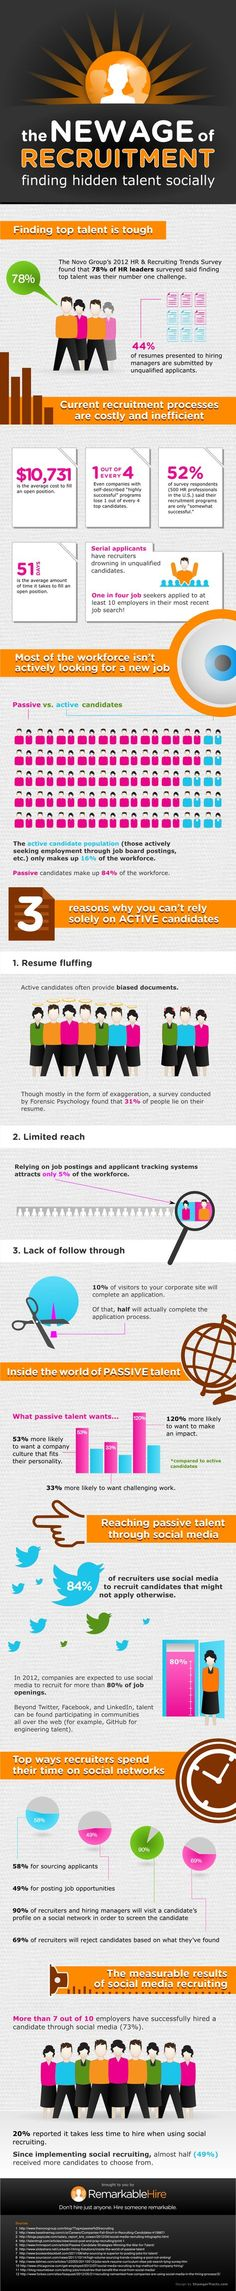 How to Find Top Tech Talent on Social Media. Recruitment professionals, you'll enjoy this one.